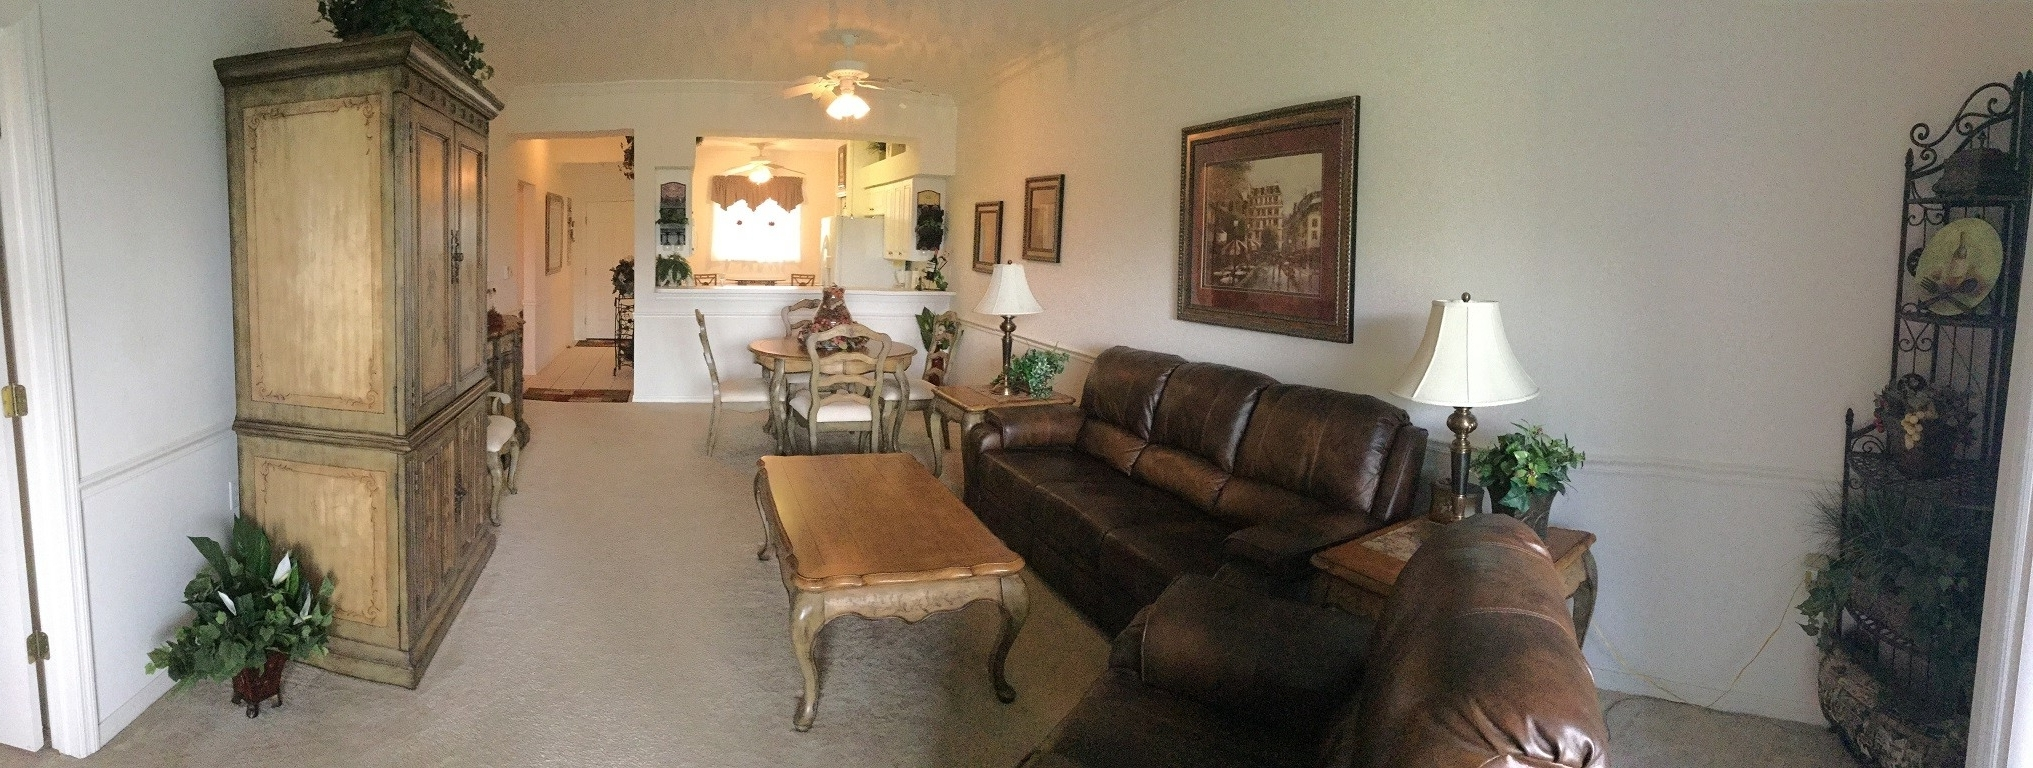 Matter Brothers Complaints Kanes Furniture Fort Myers Baer For Most Up To Date Kanes Sectional Sofas (View 18 of 20)